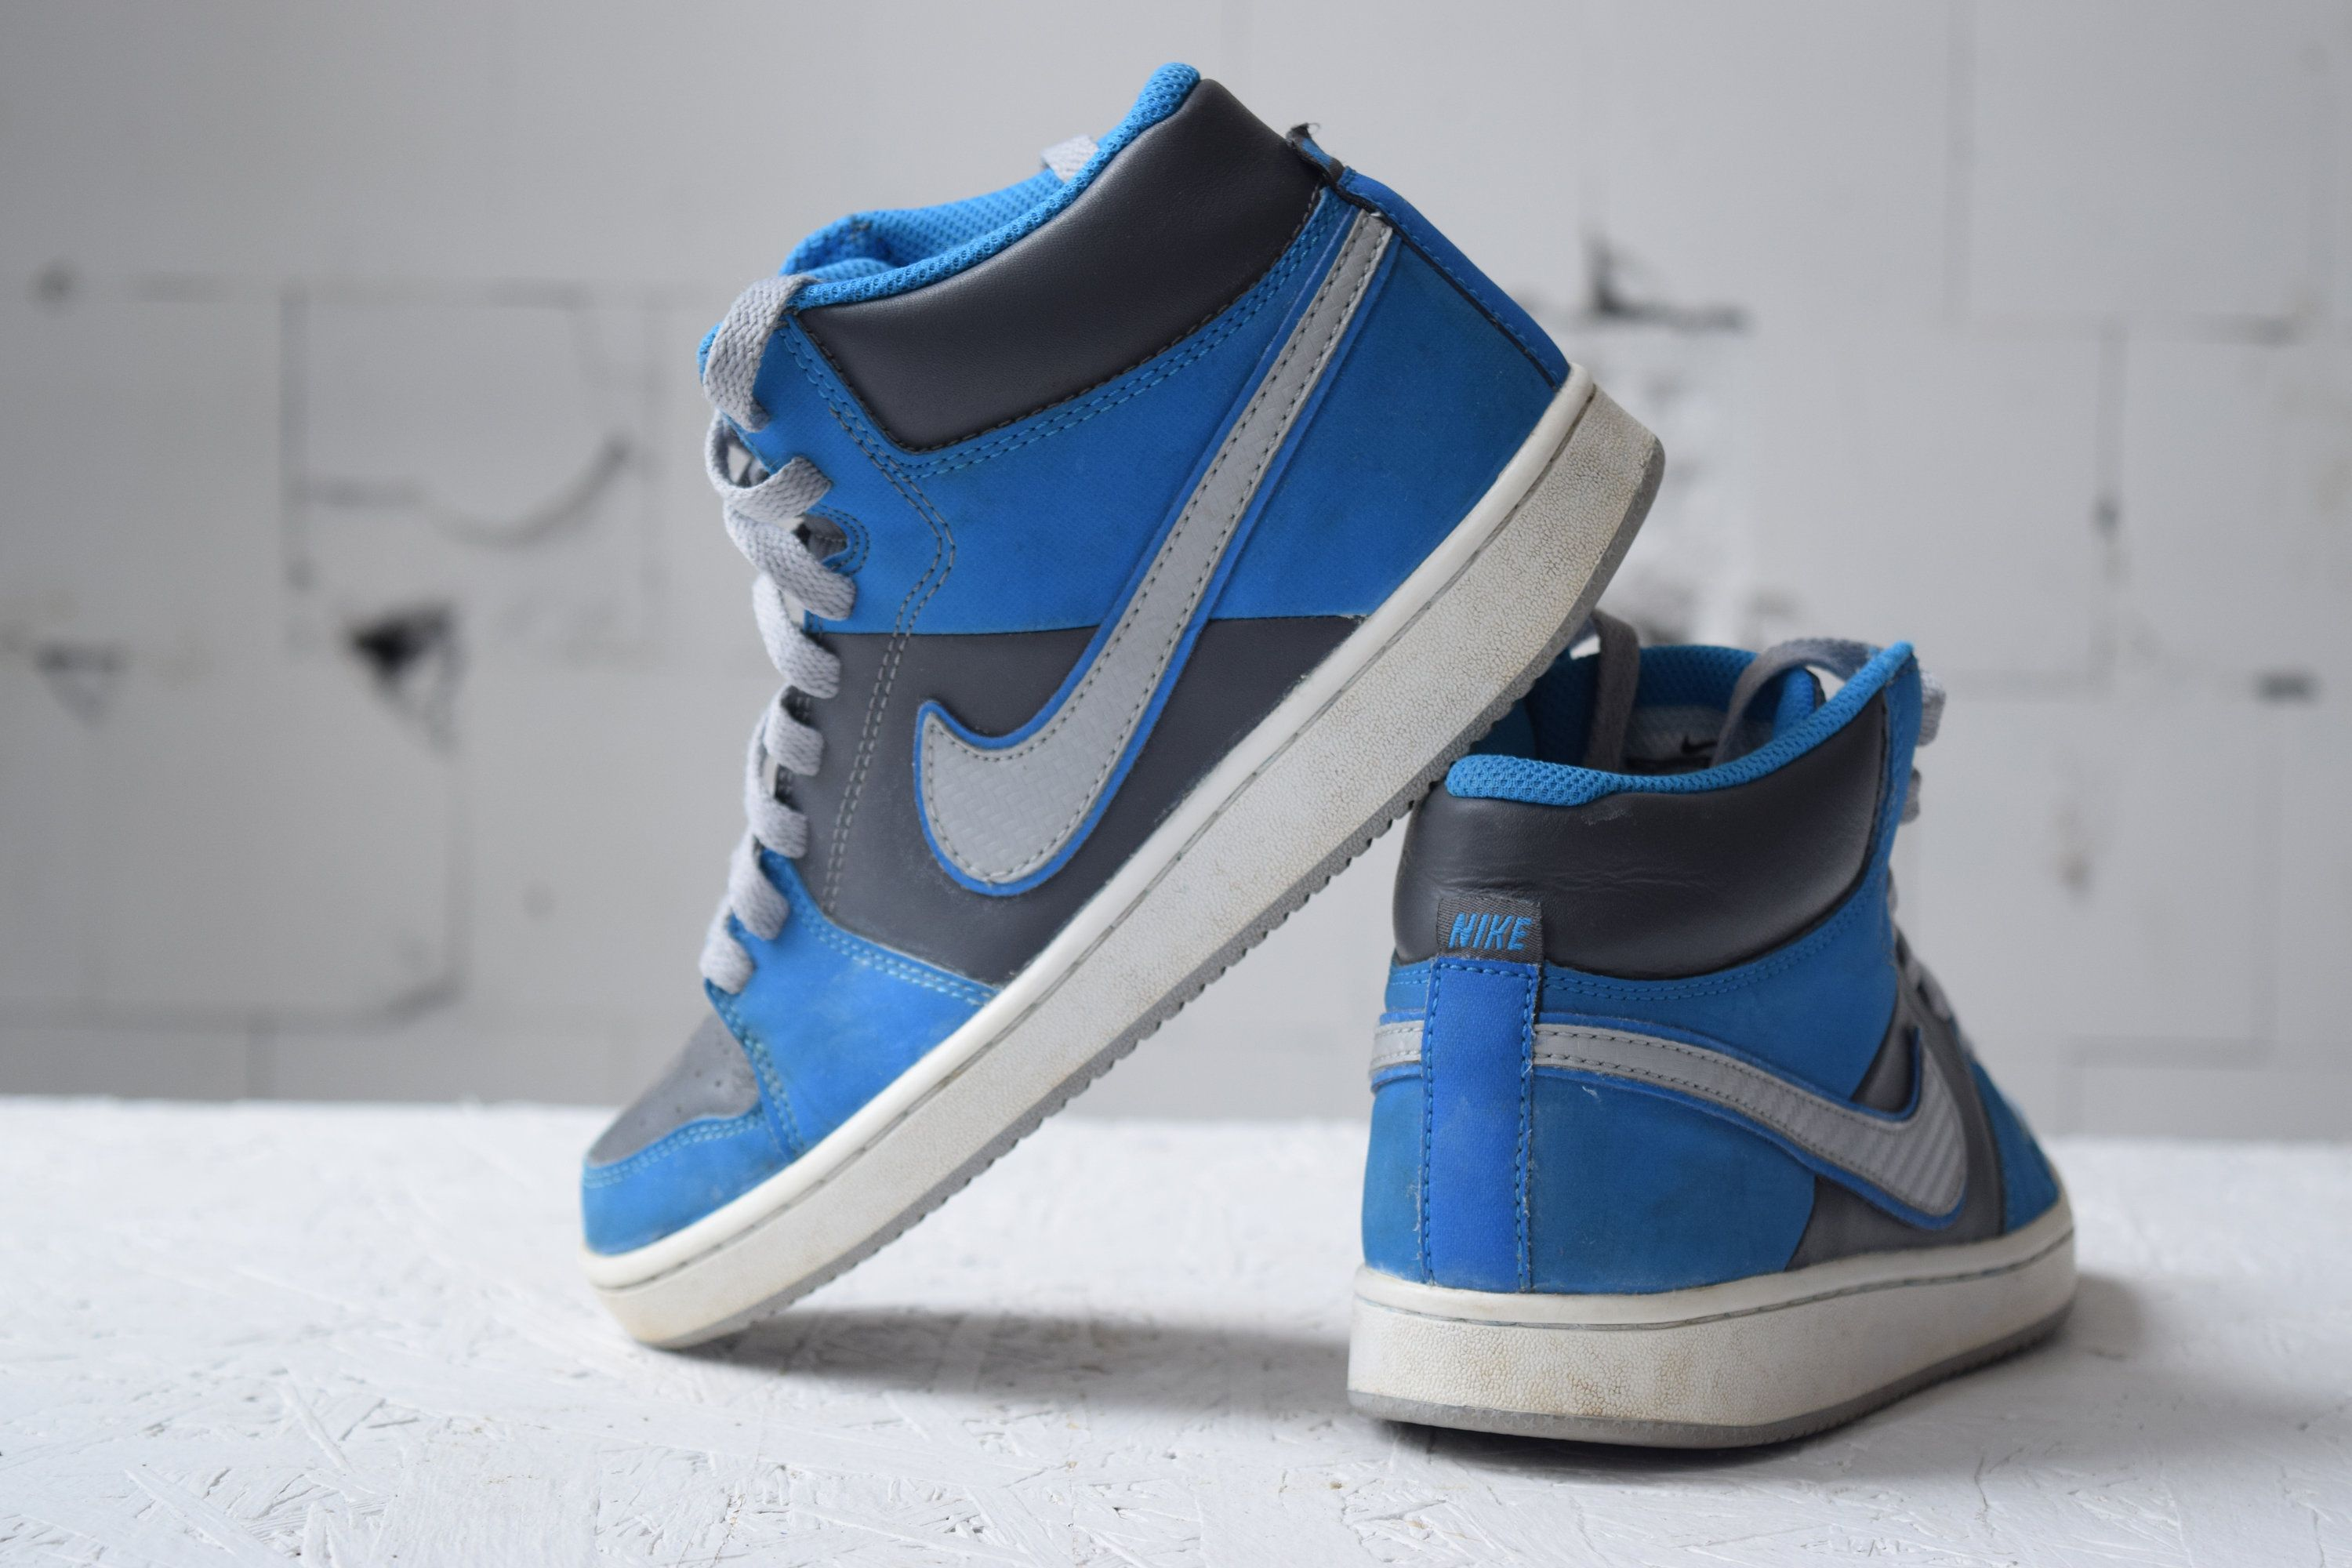 Nike Sneakers Vintage Skate Shoes High Top Trainers Etsy Hip Hop Shoes Sport Shoes Women Skate Shoes